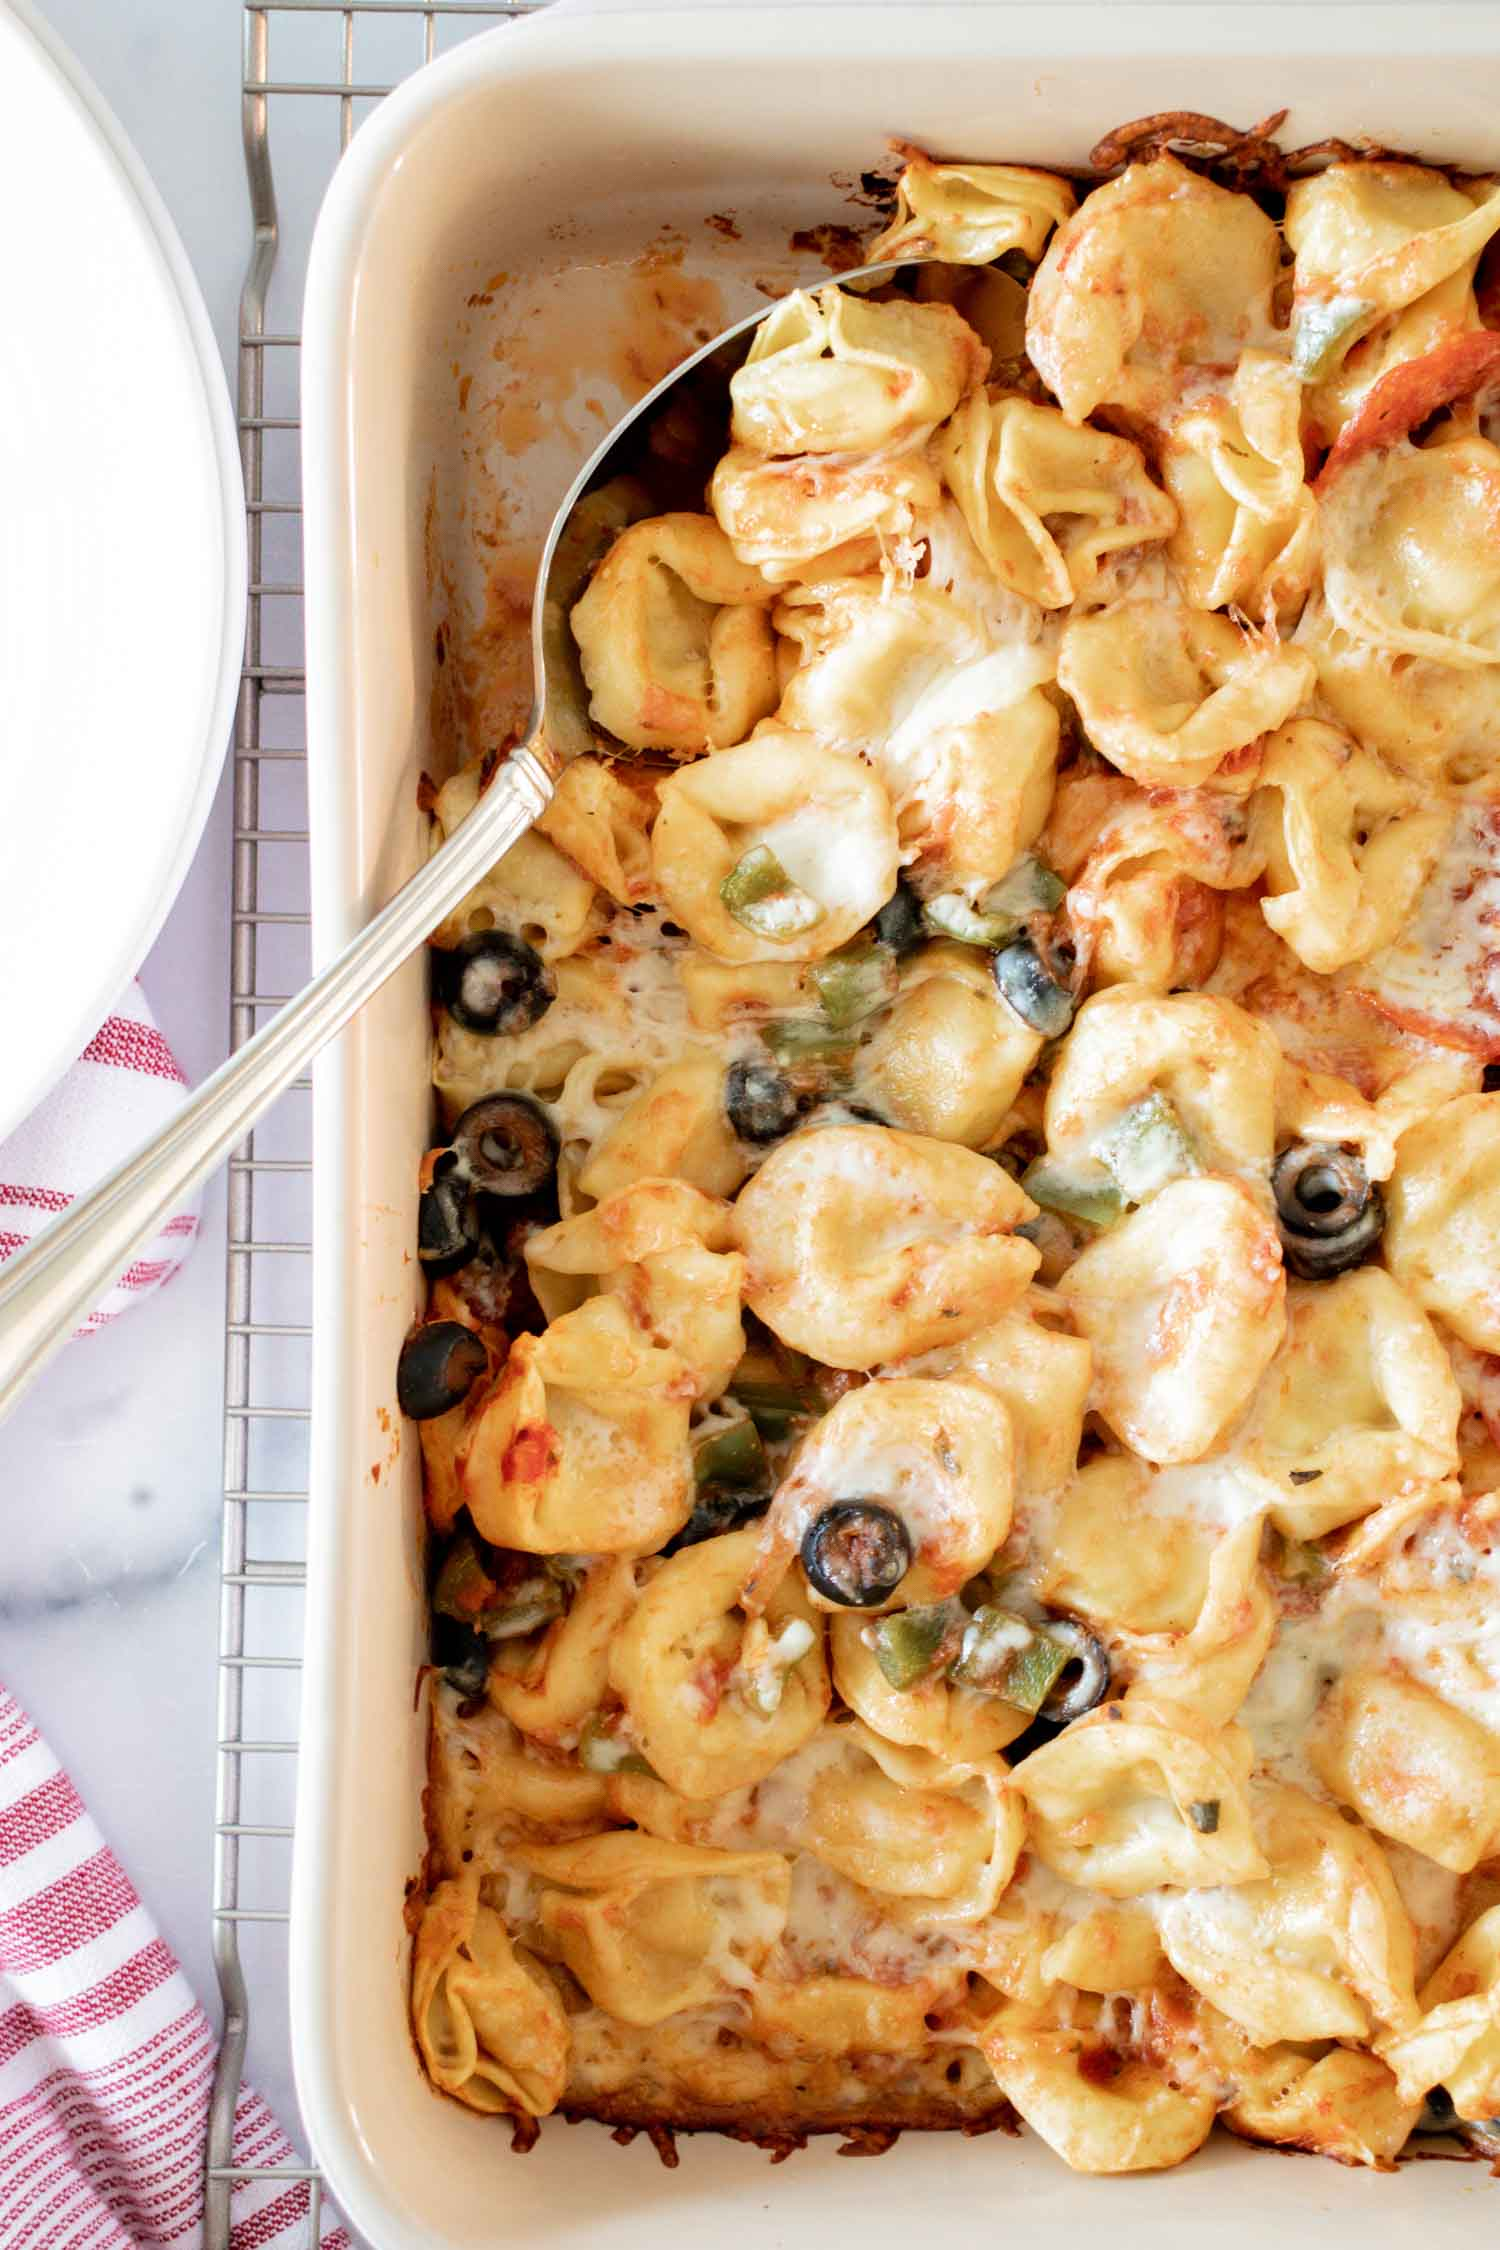 A white pan full of tortellini bake with a silver spoon in it on top of a wire rack.